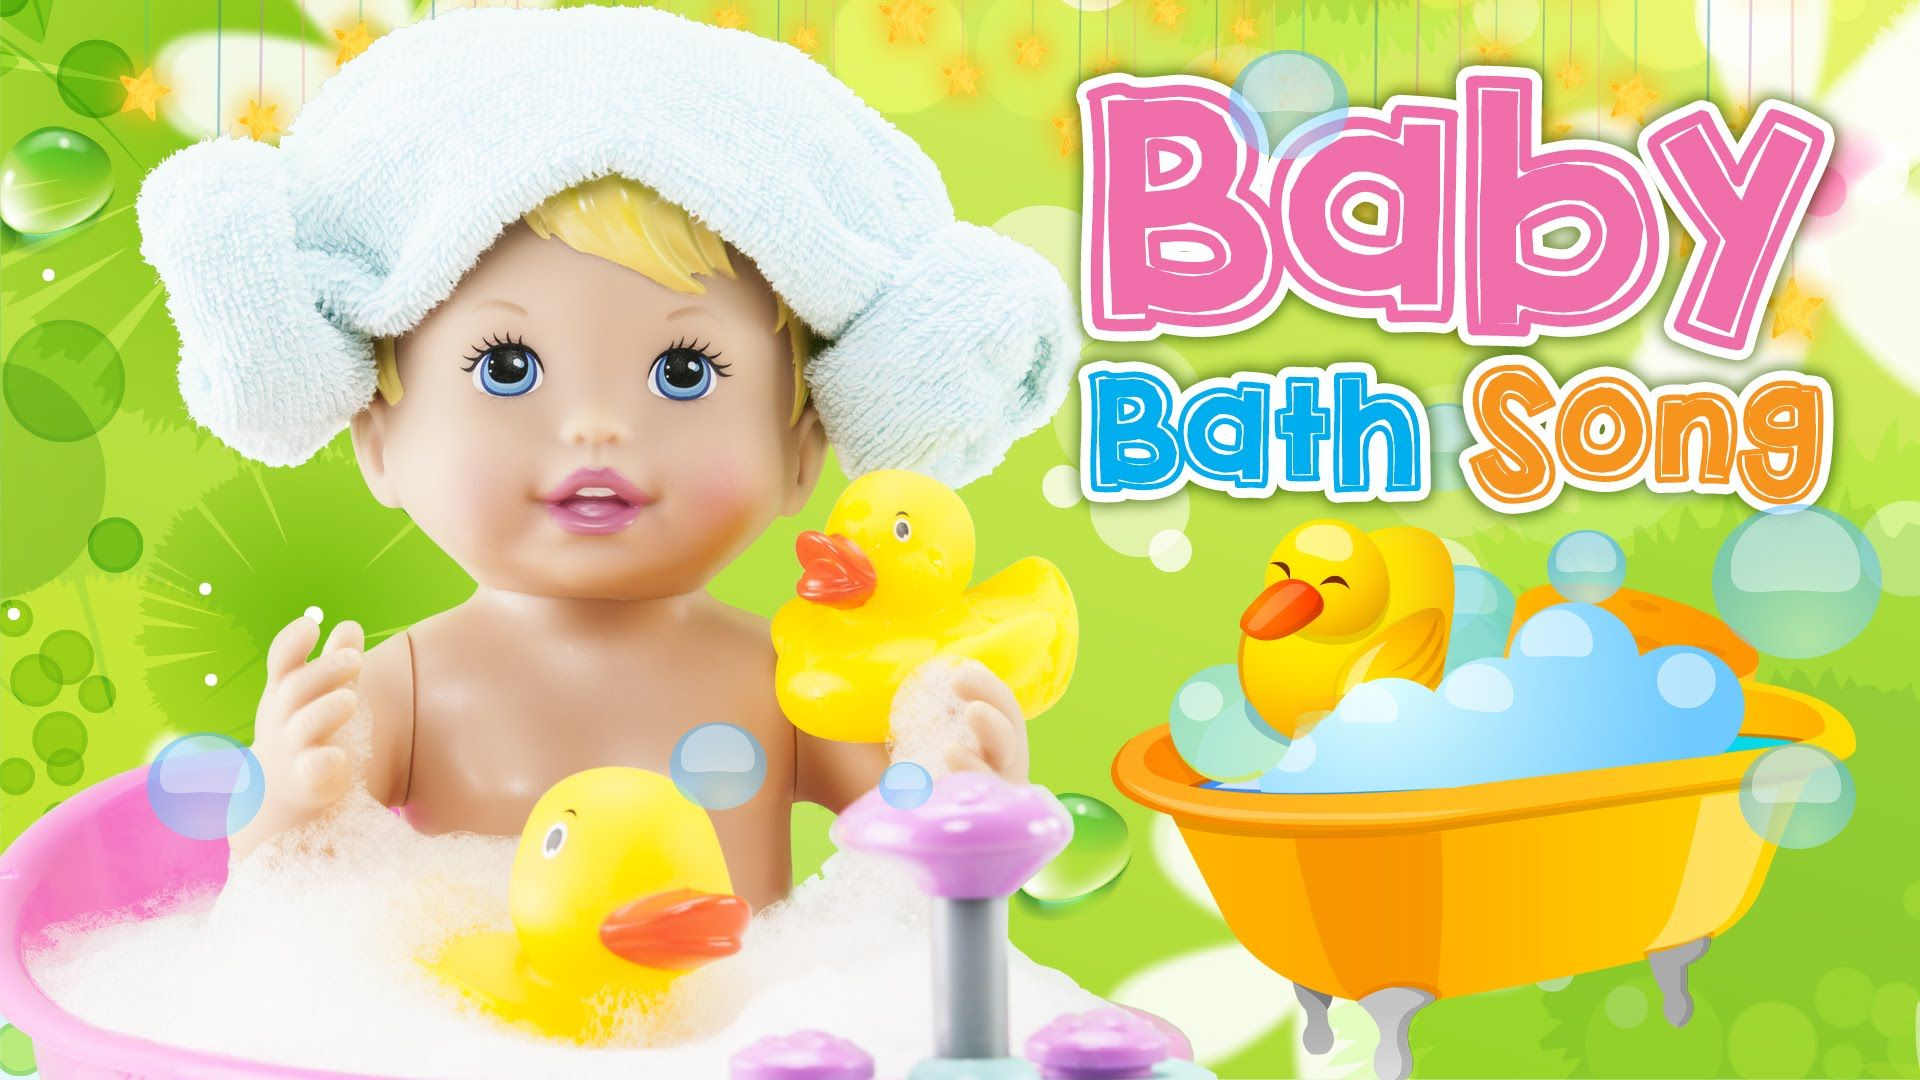 Baby Children Nursery Rhyme Song Hd New Bath Song How To Bath Baby Doll Bathtime Toy